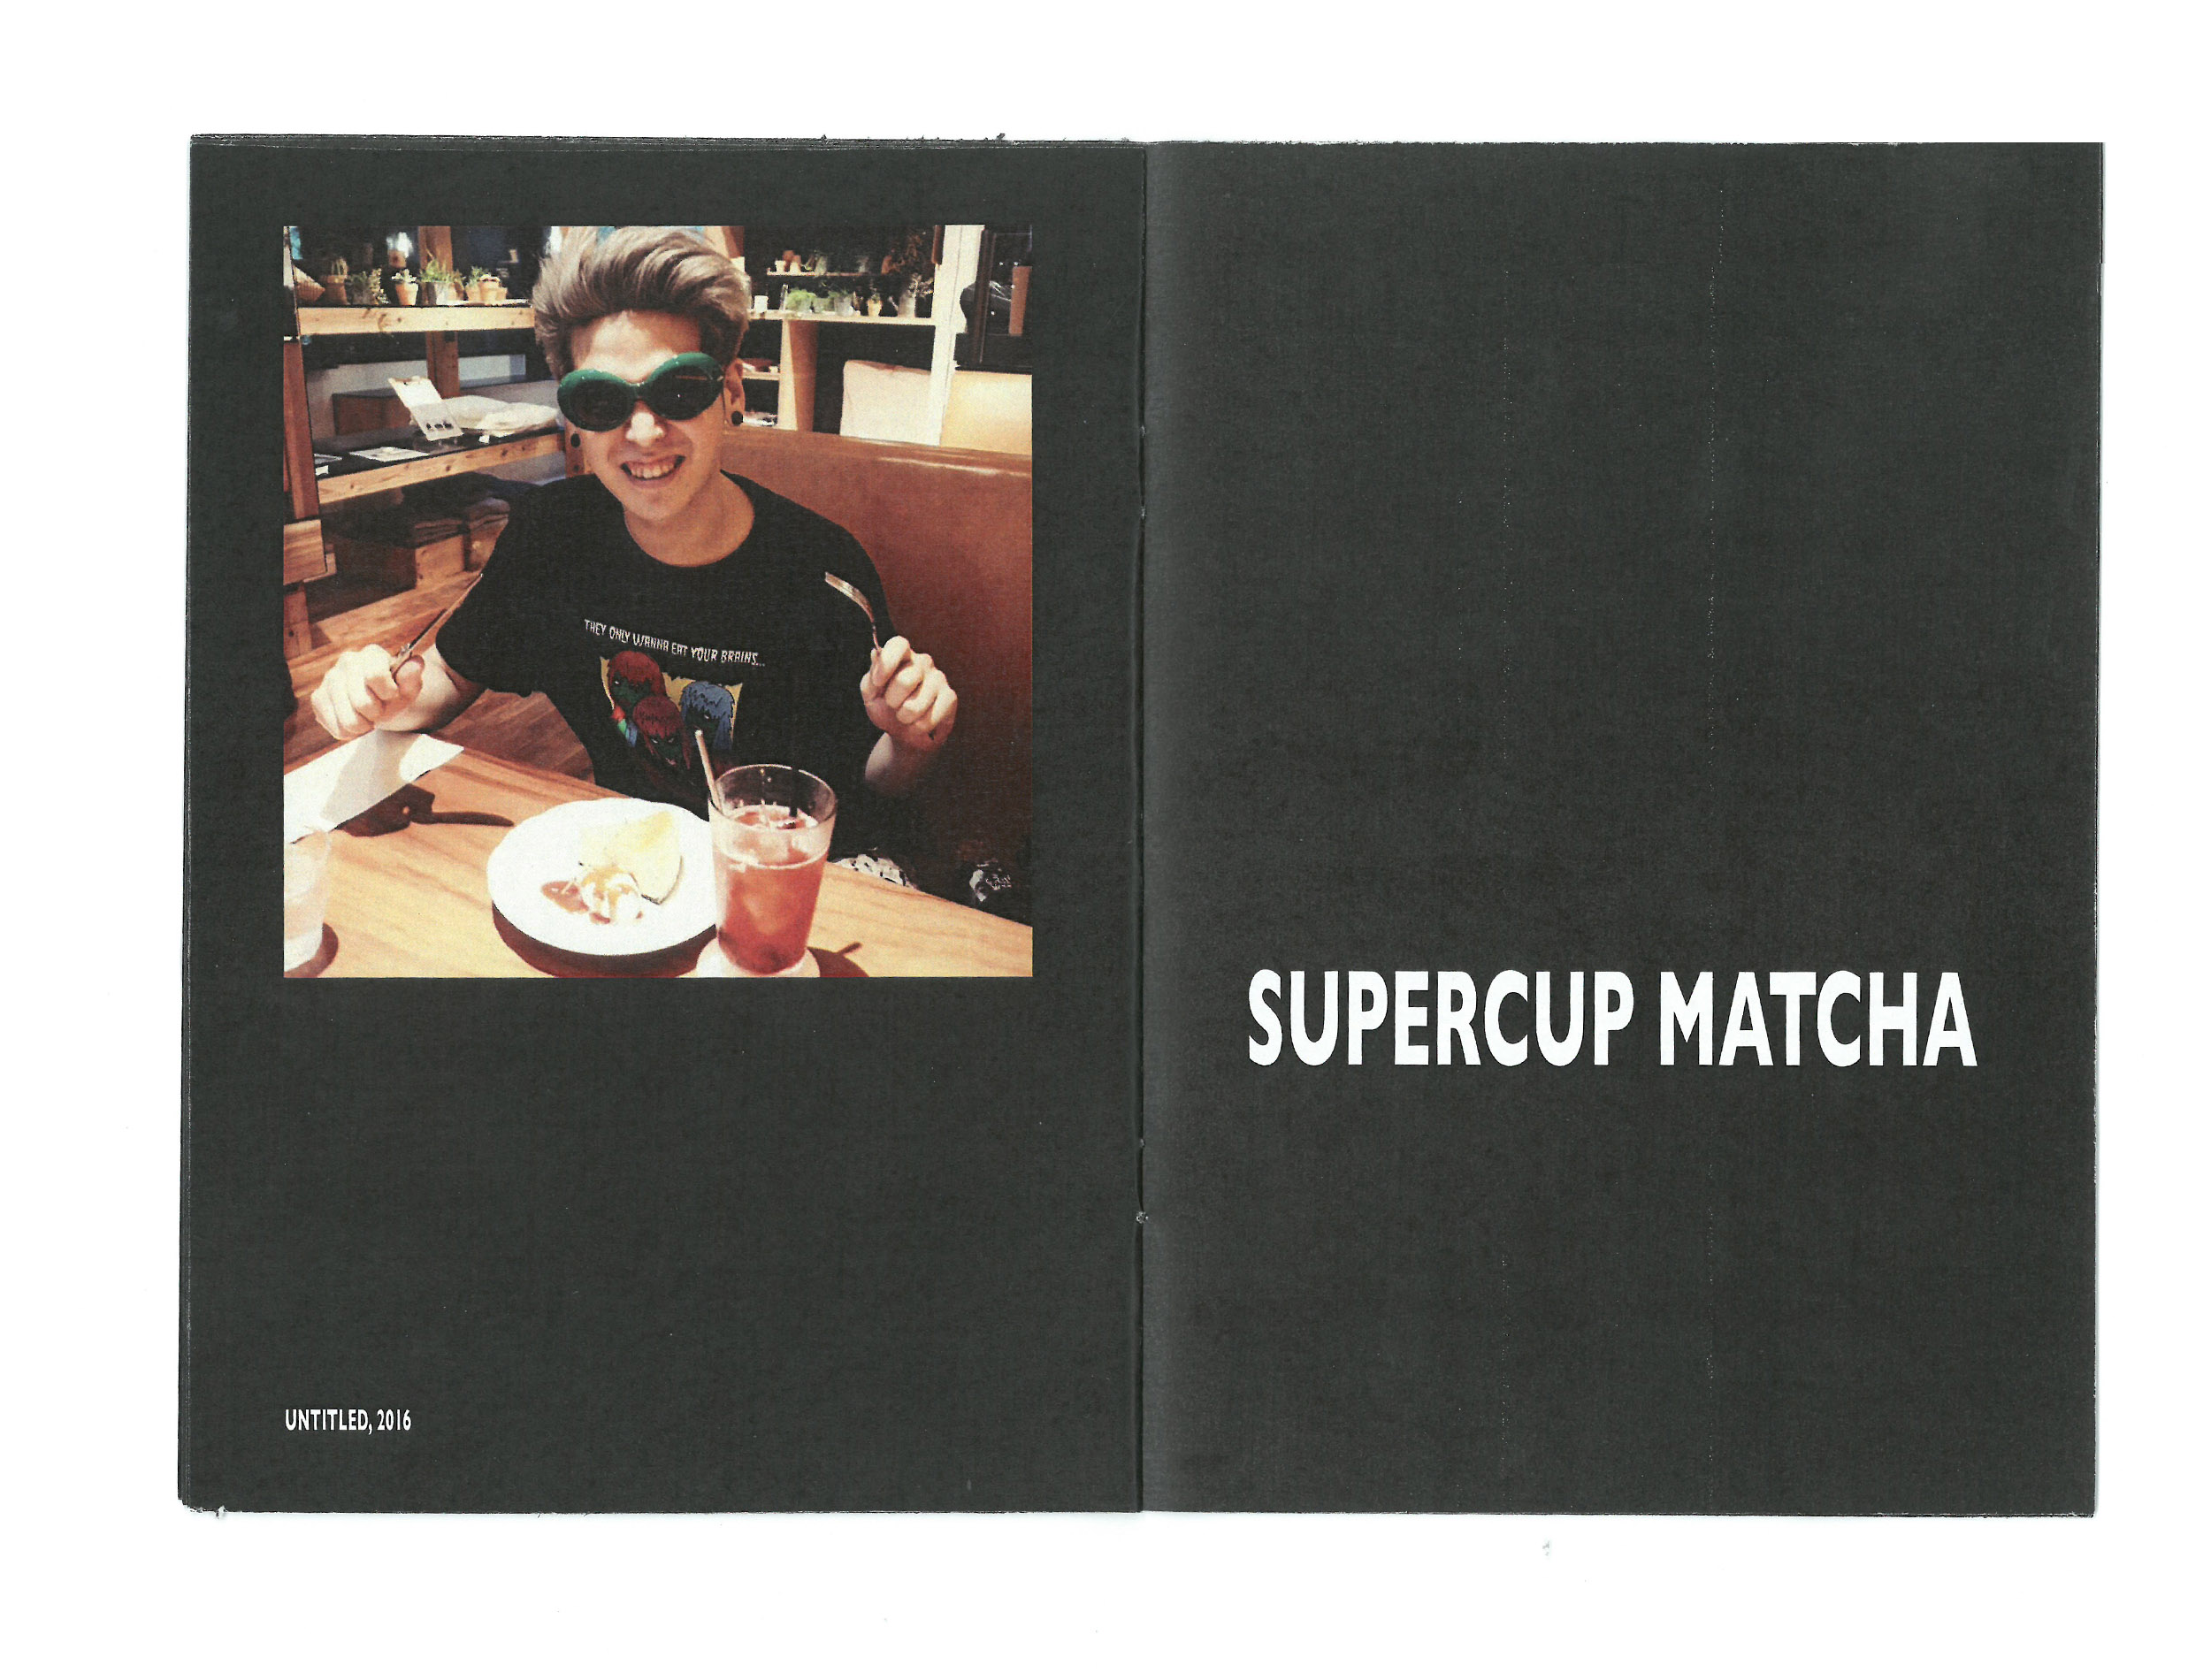 Time Zine: Untitled, 2016 by Supercup Matcha for Desserttime